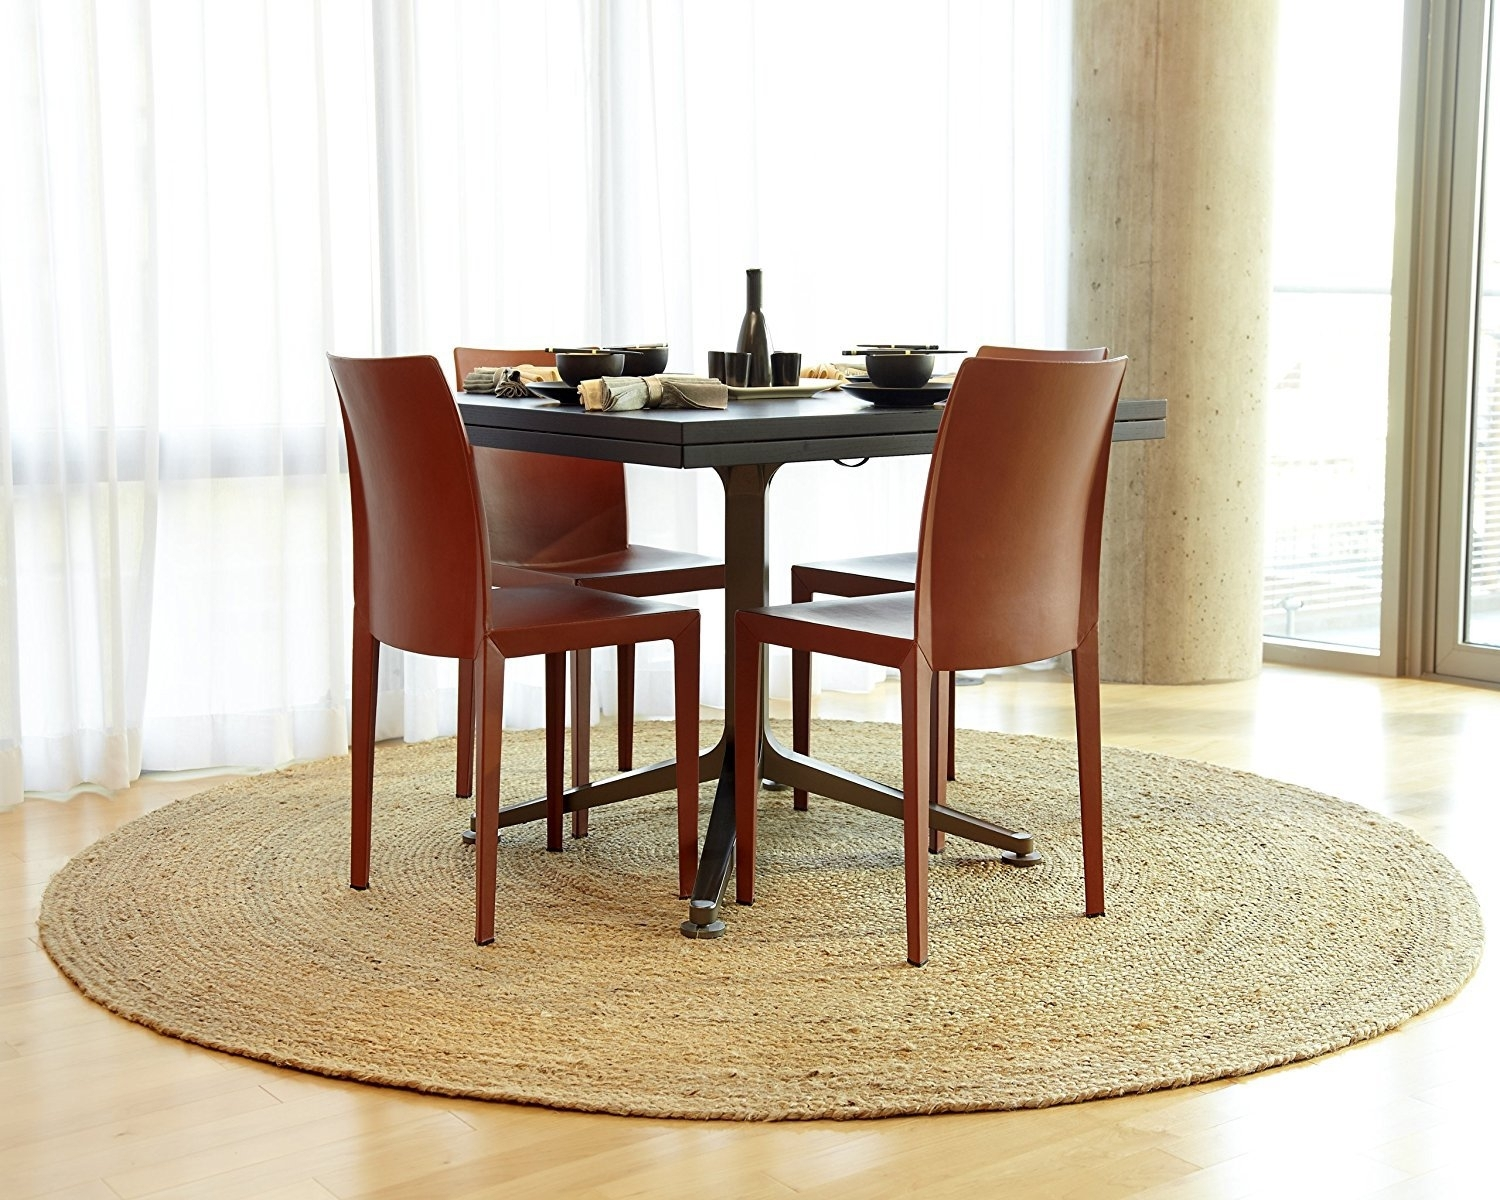 Gray Decor Round Seagrass Rug Room Design Casual Motif Seagrass Rug With Most Up To Date Caden Round Dining Tables (View 20 of 20)